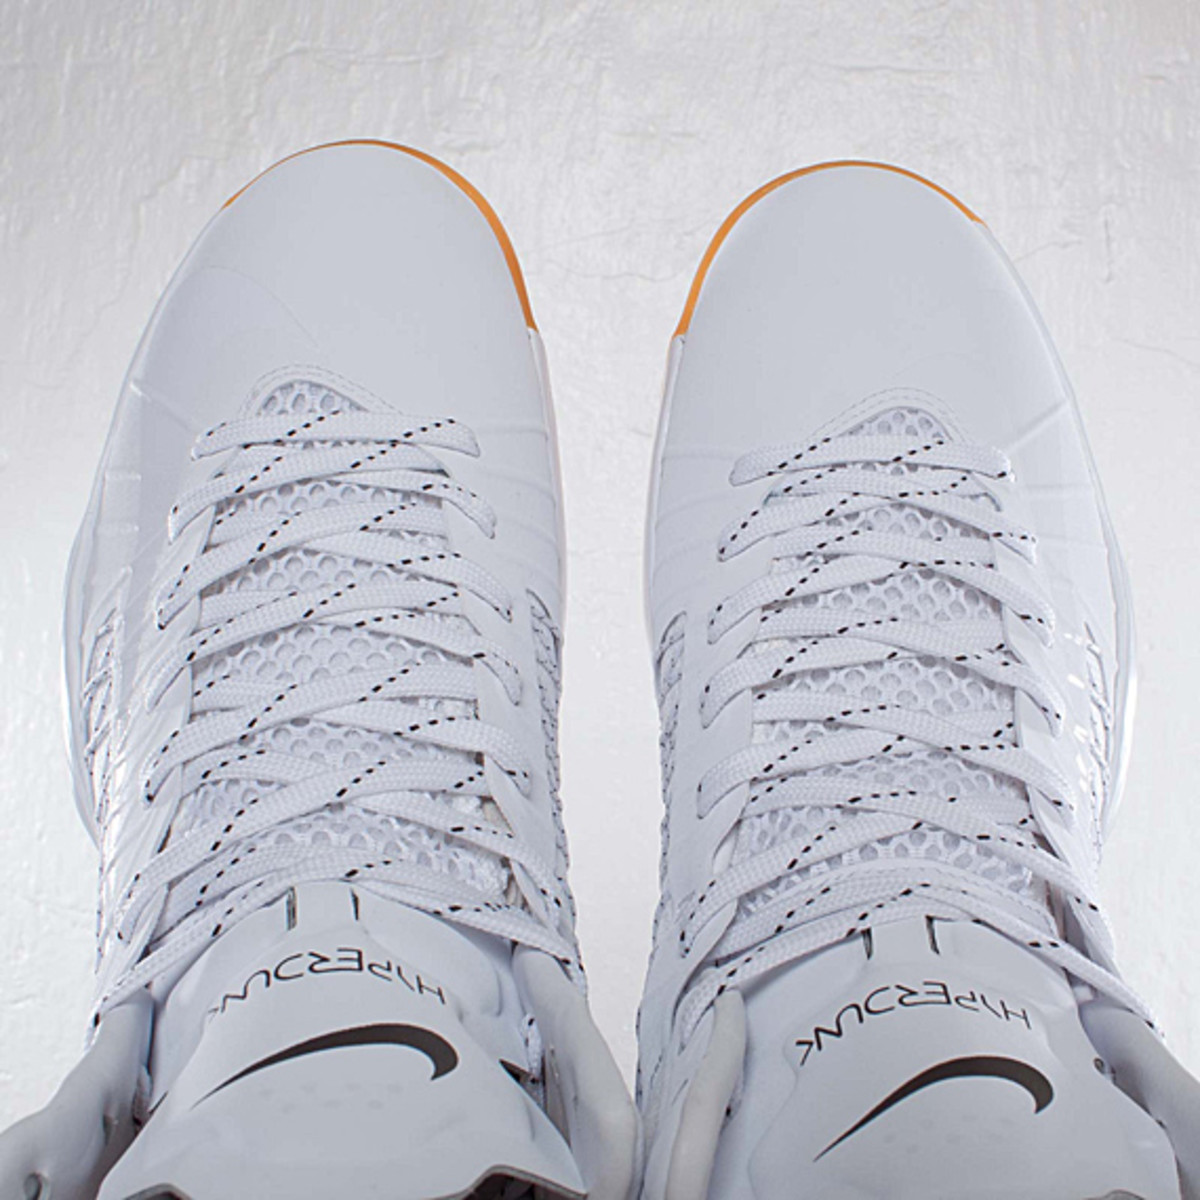 undefeated-nike-hyperdunk-bring-back-pack-598471-110-10